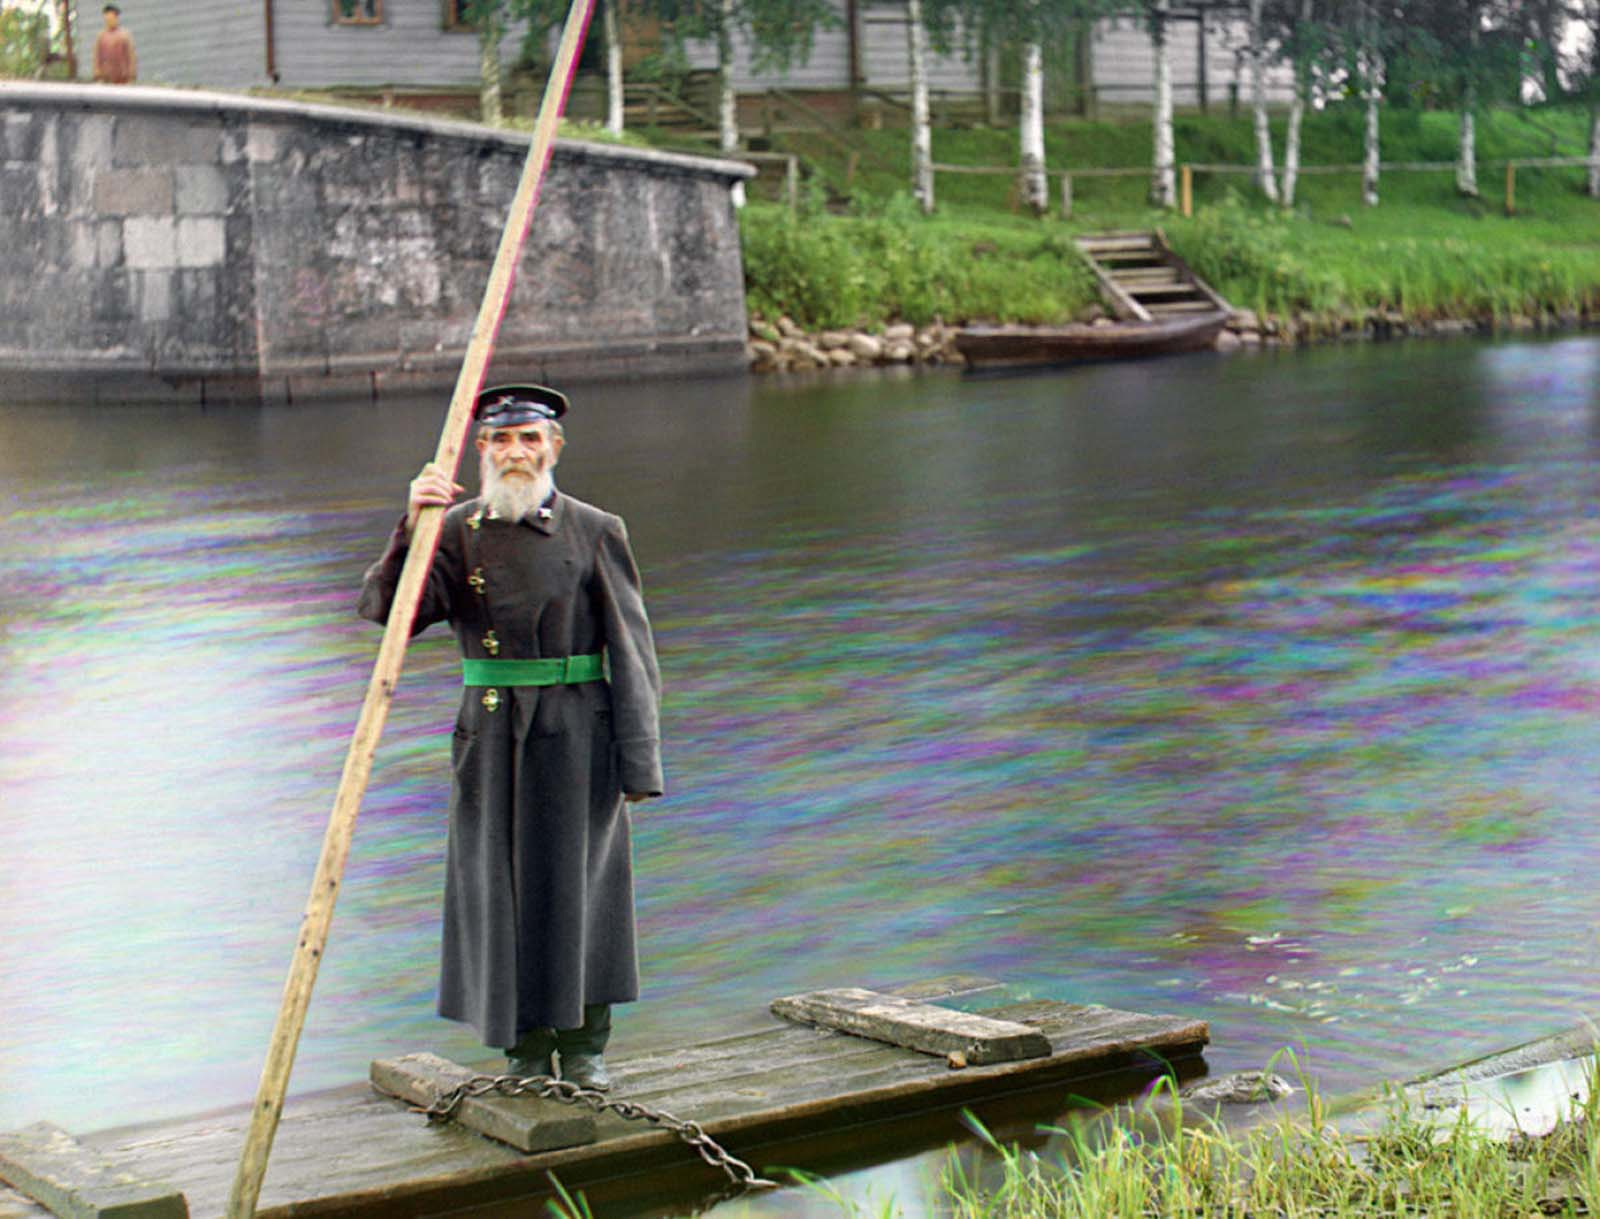 Pinkhus Karlinskii, eighty-four years old with sixty-six years of service. Supervisor of Chernigov floodgate, part of the Mariinskii Canal system. Photo taken in 1909.